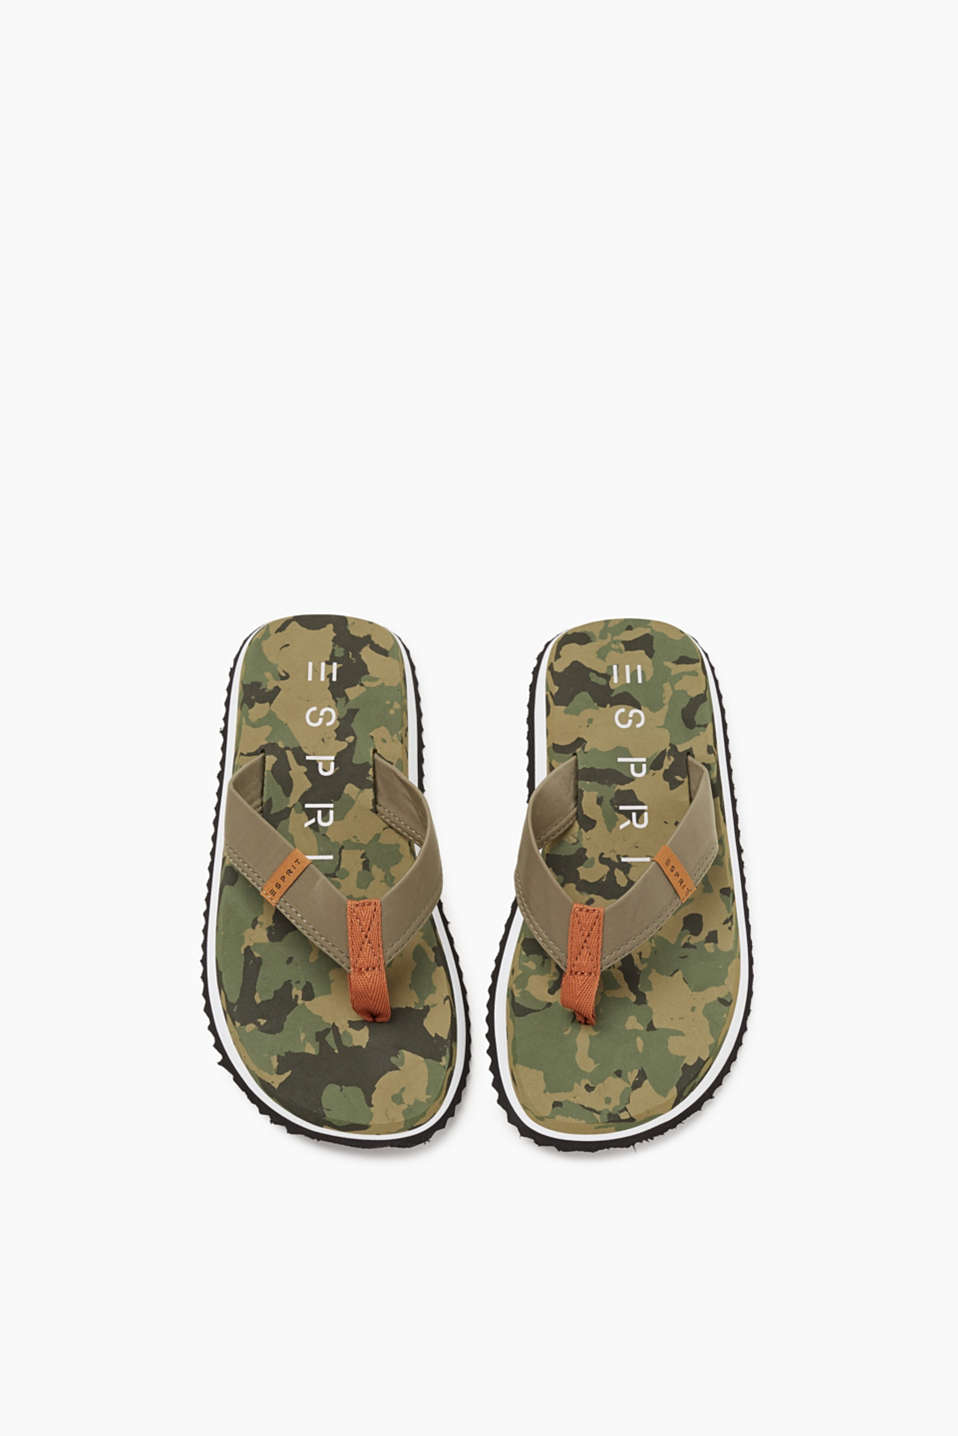 Toe-post sandals with camouflage pattern